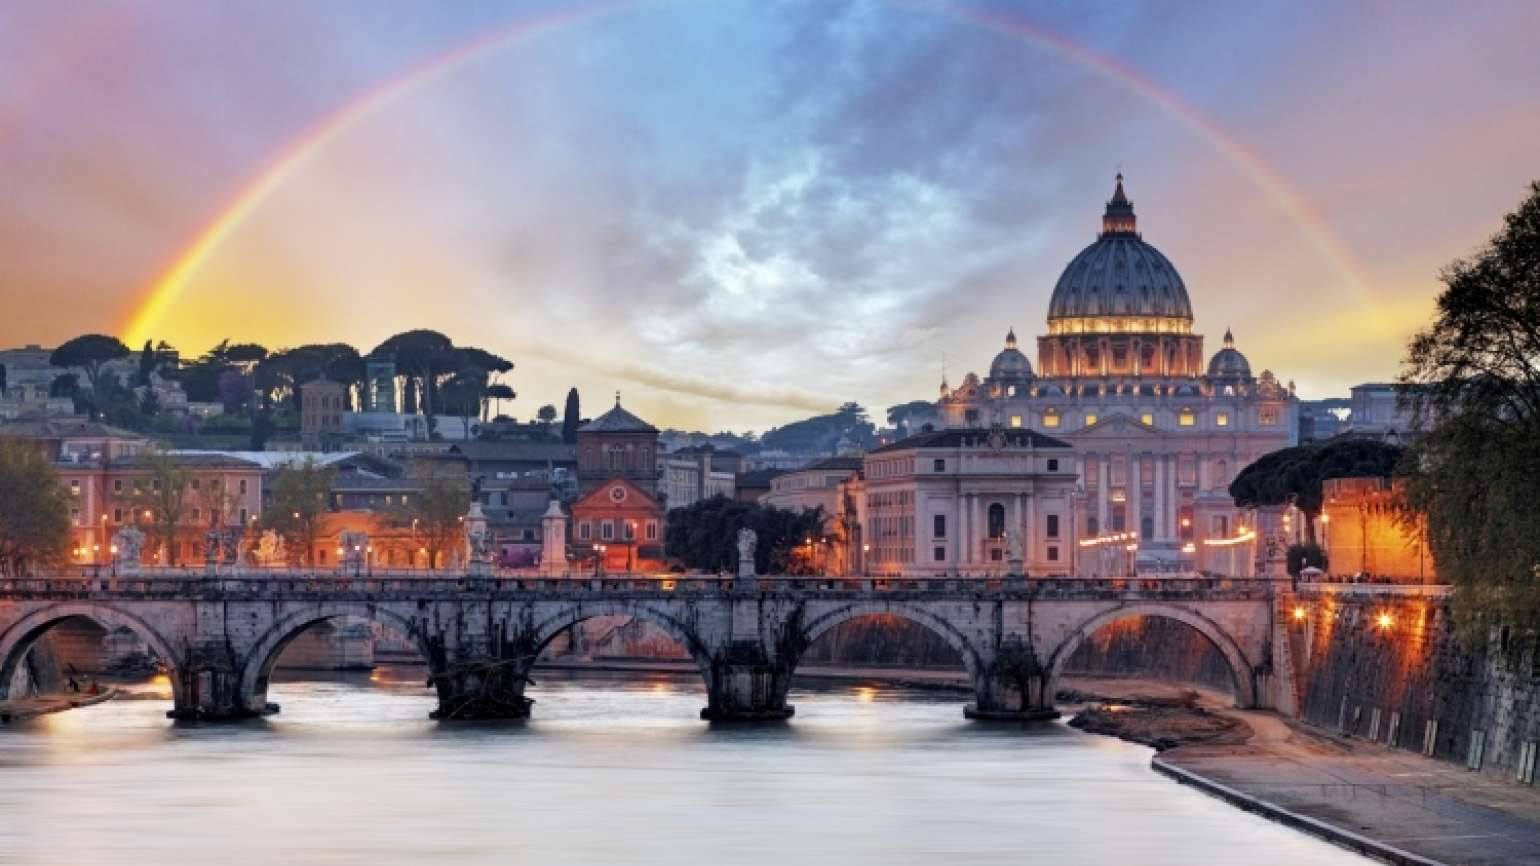 Praying in Rome - rainbow over the Vatican